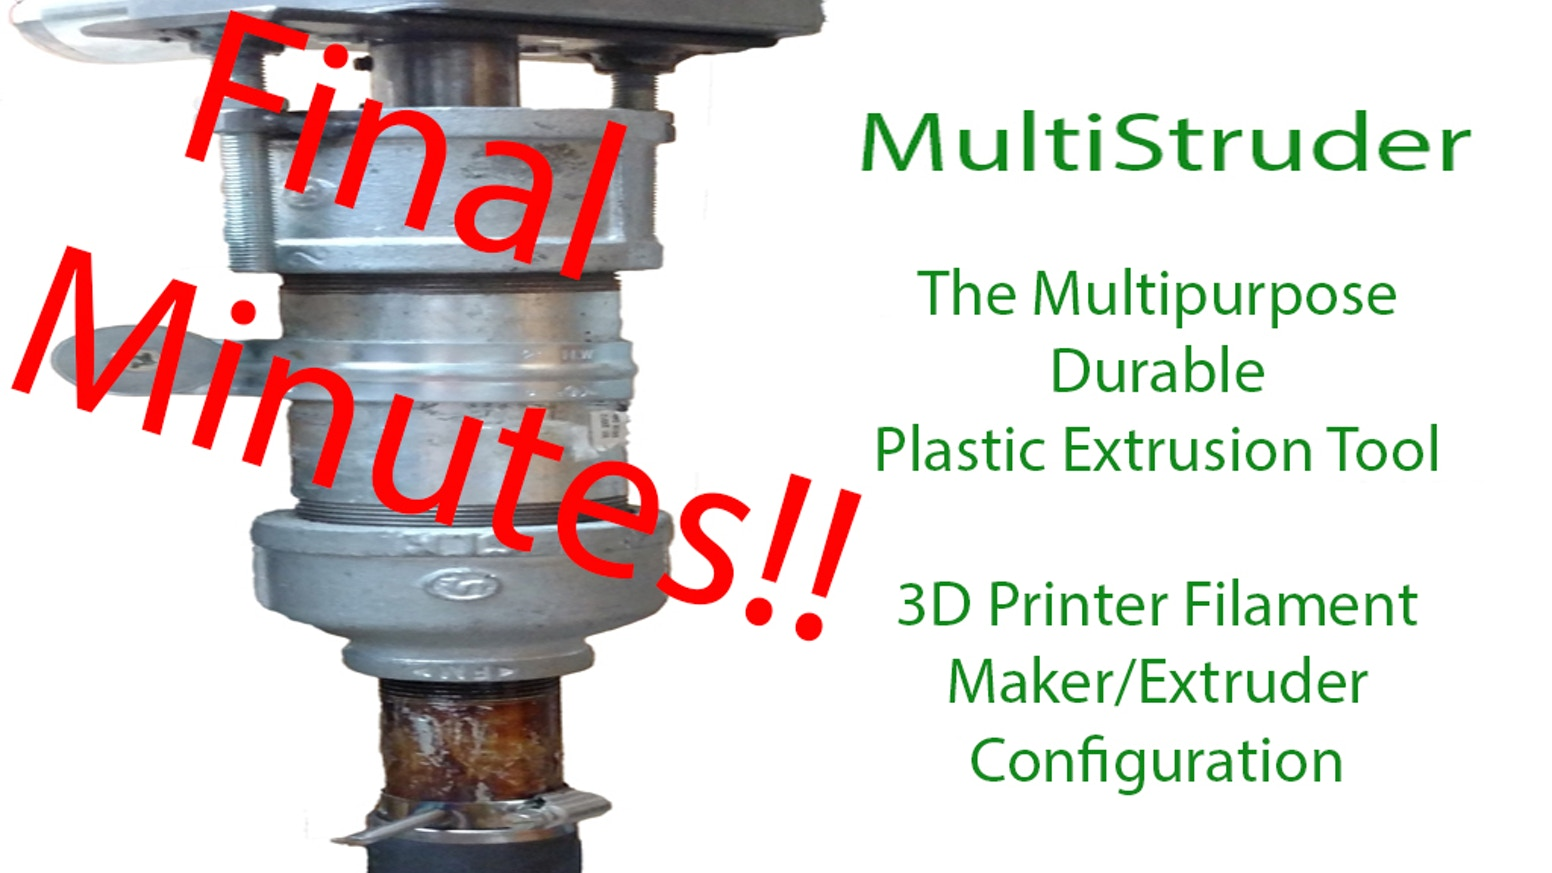 A simple, rugged, expandable, modable, filament extruder and multipurpose fabrication tool.